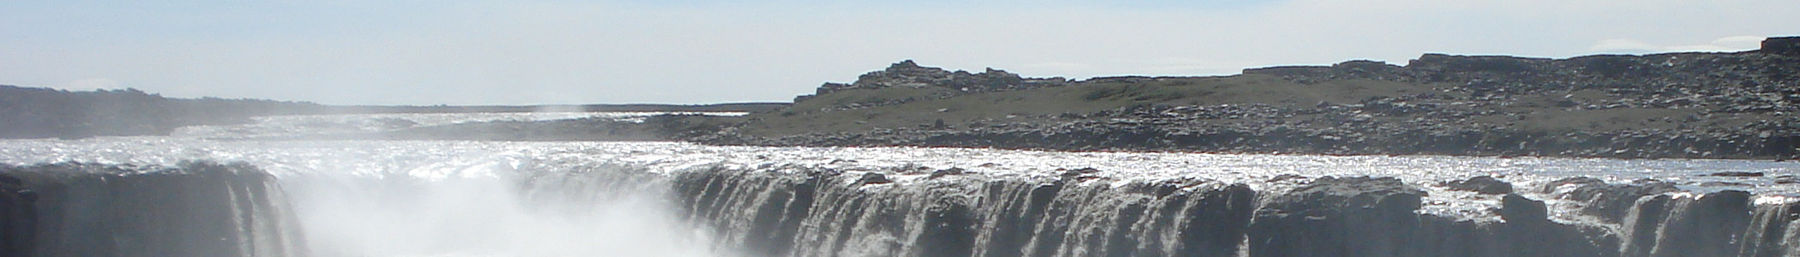 Bannerselfoss.jpg